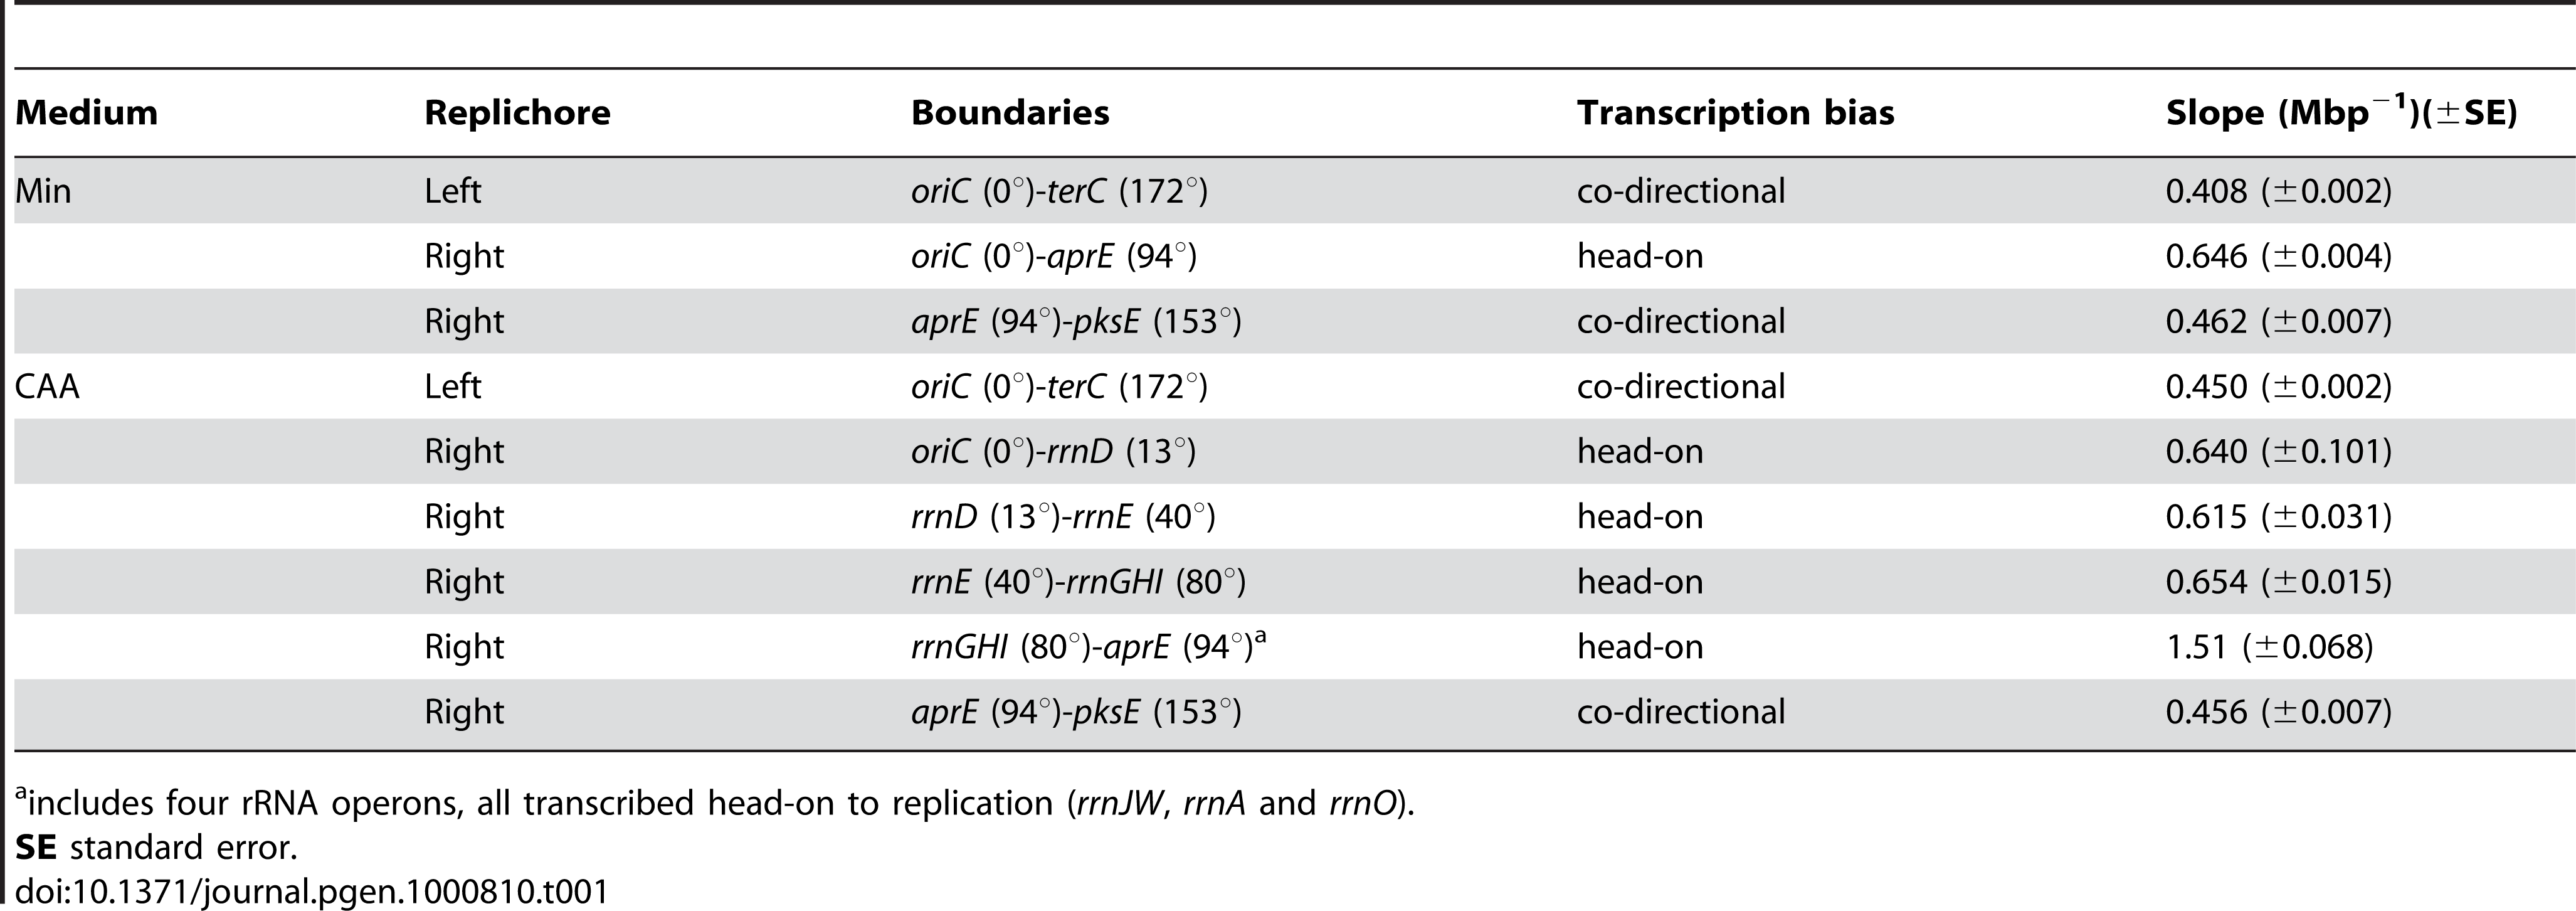 Slopes of asynchronous gene dosage profiles in the HT inversion strain.